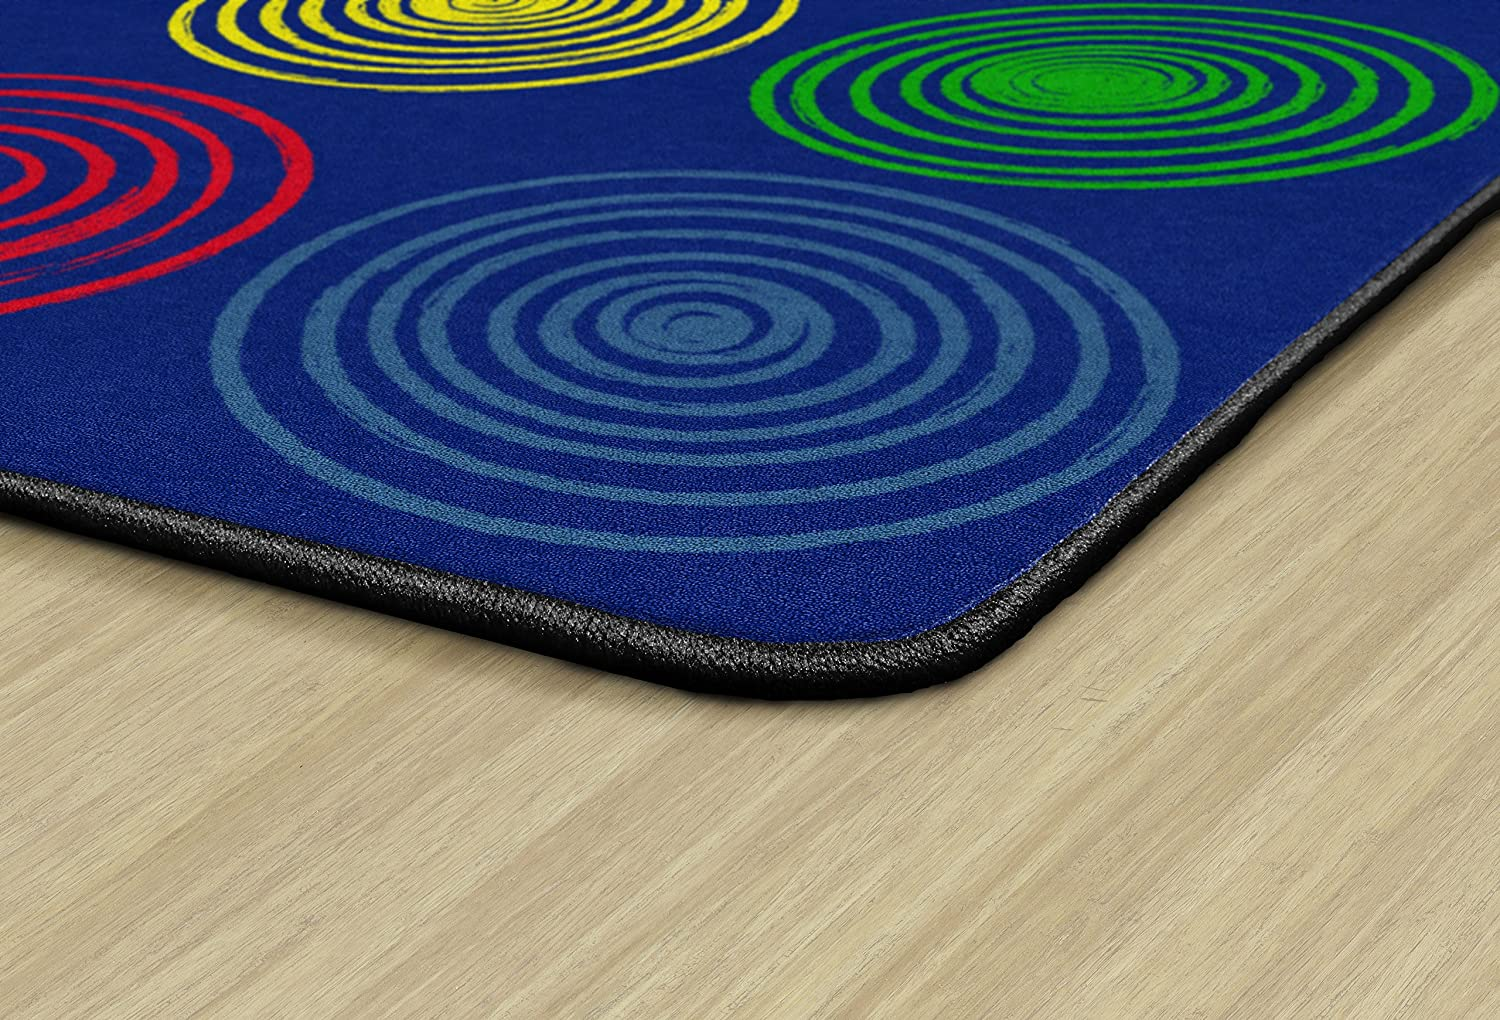 6x84 Rectangle Childrens Classroom Seating Rug Seats 20 Flagship Carpets FE413-32A Circles Grey /& Multi